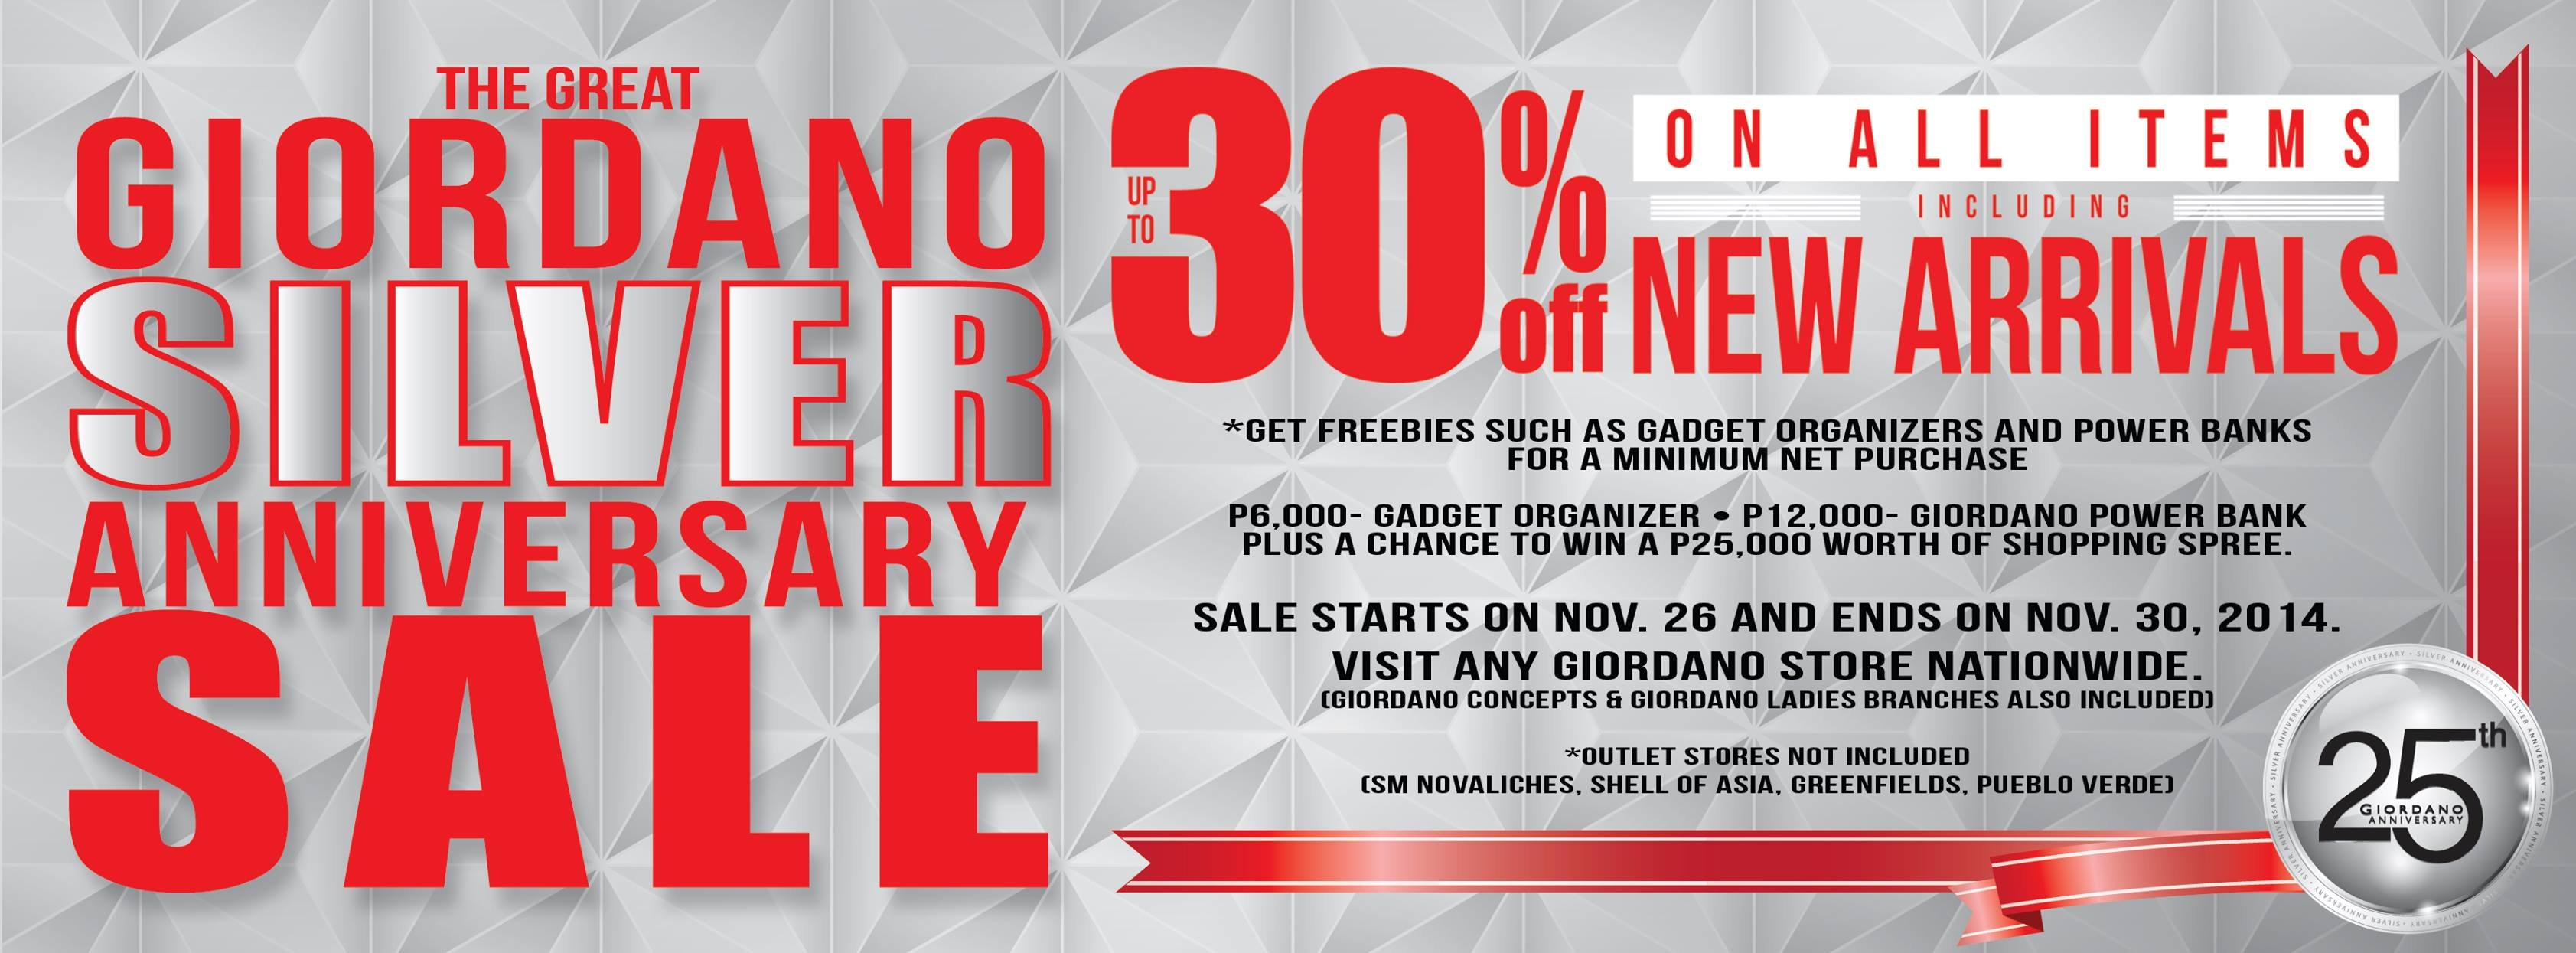 The Great Giordano Silver Anniversary Sale November 2014